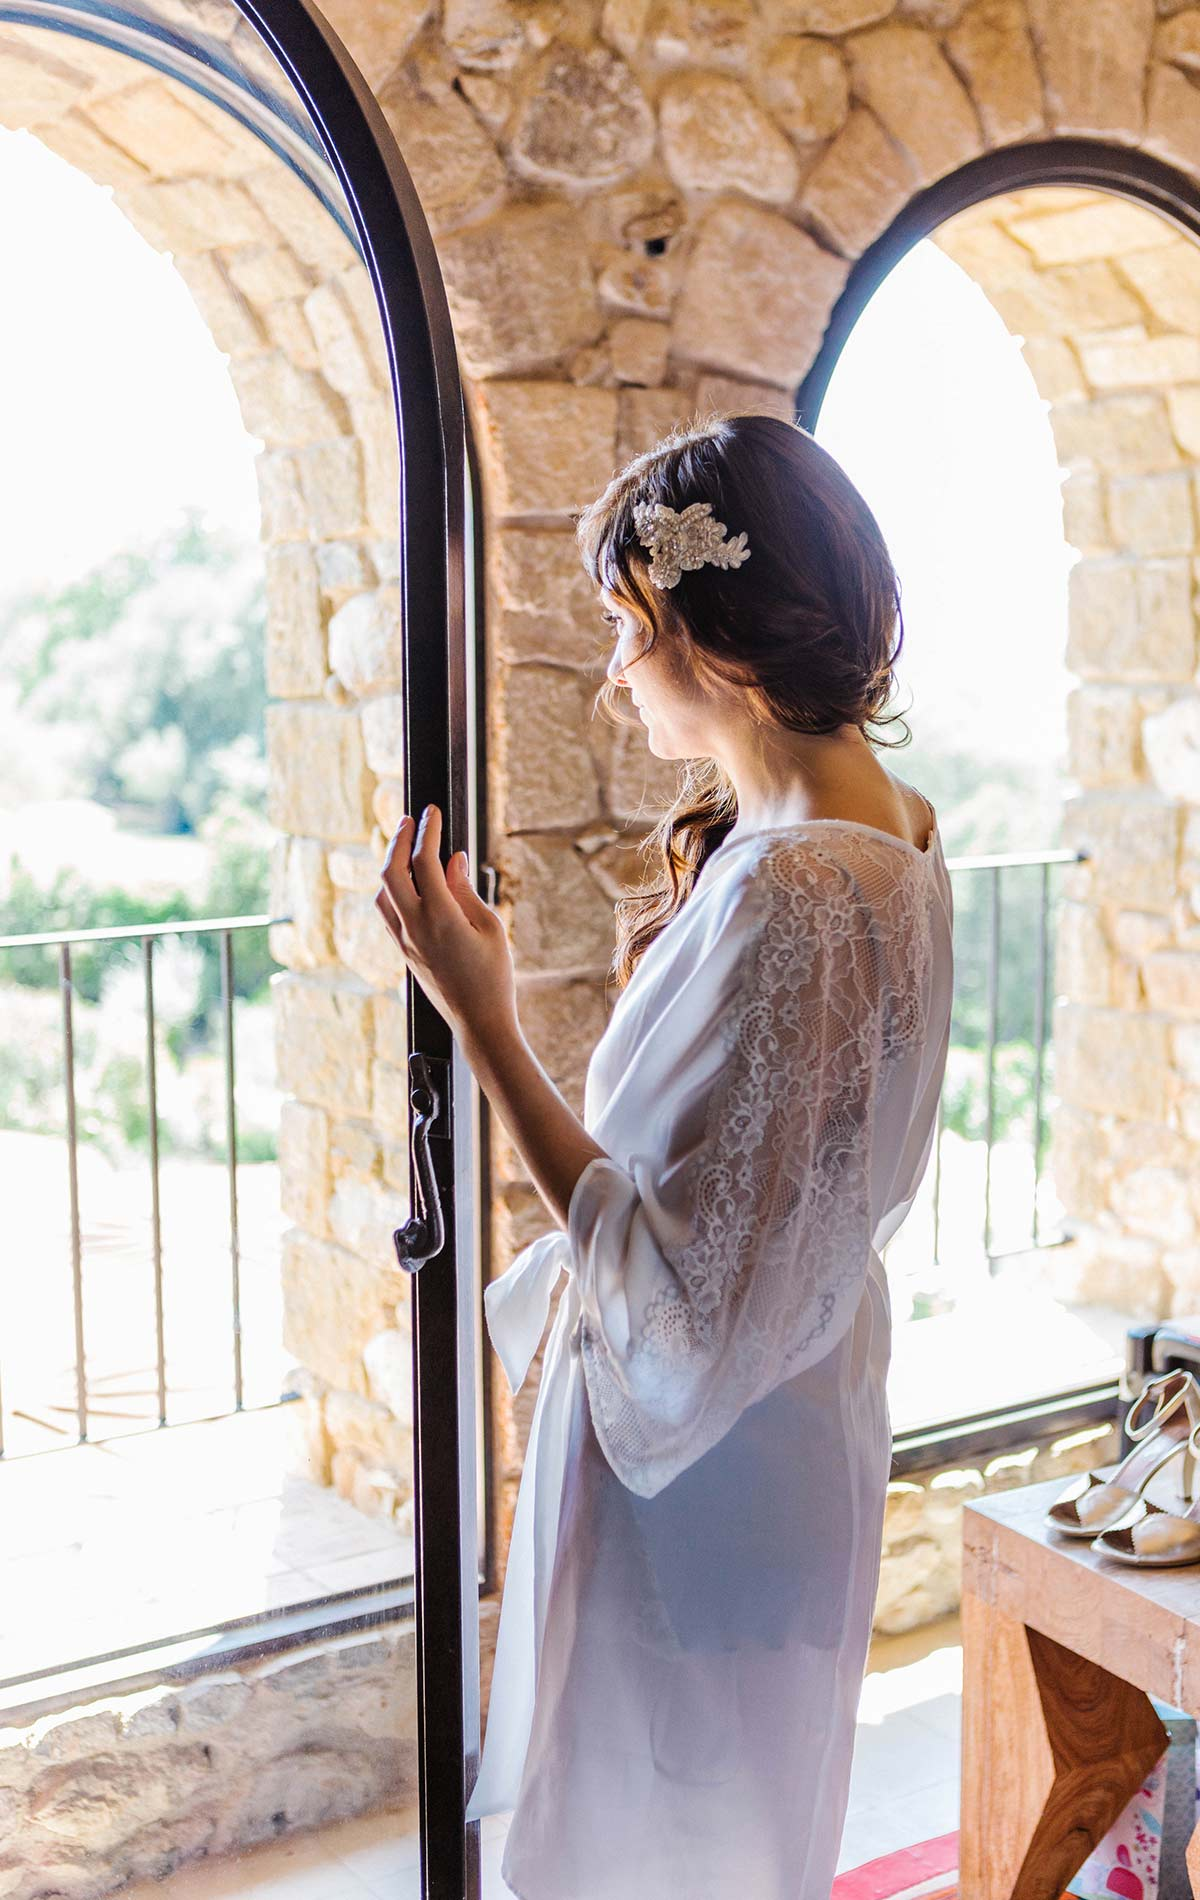 Bride looking in the window. Castell de Emporda wedding photogaphy. Castell de Emporda wedding photography. Destination wedding photographer Spain.